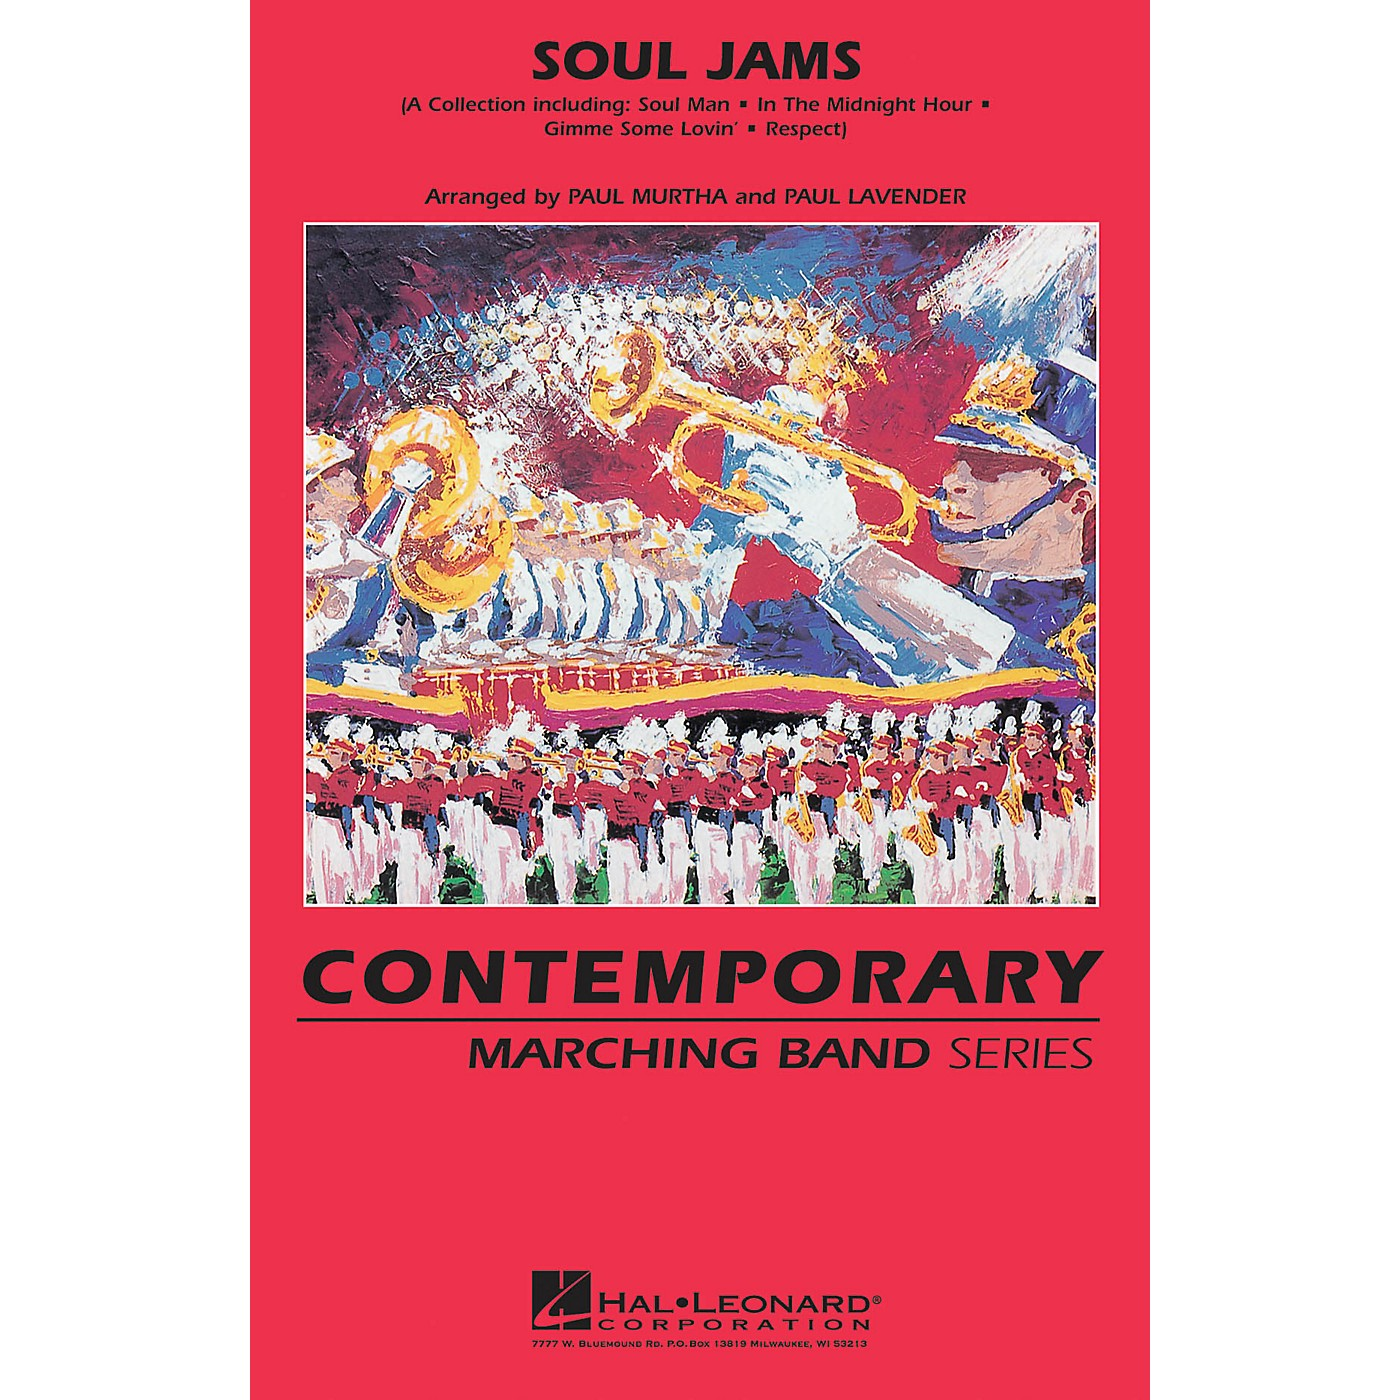 Hal Leonard Soul Jams Marching Band Level 3 Arranged by Paul Lavender thumbnail